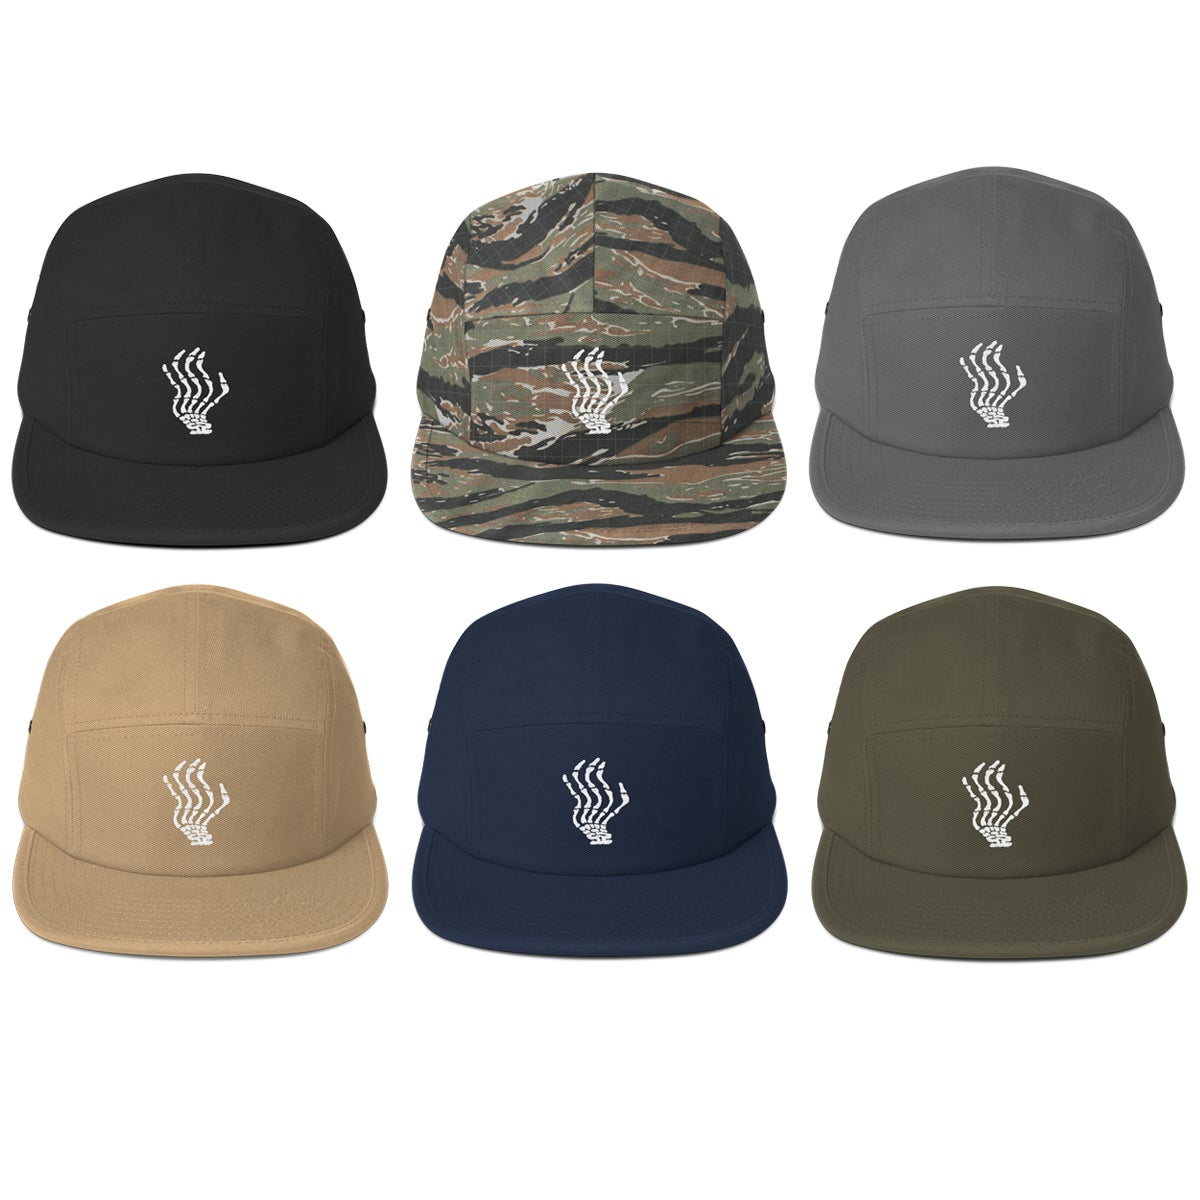 Image of Embroidered 5-Panel Hat